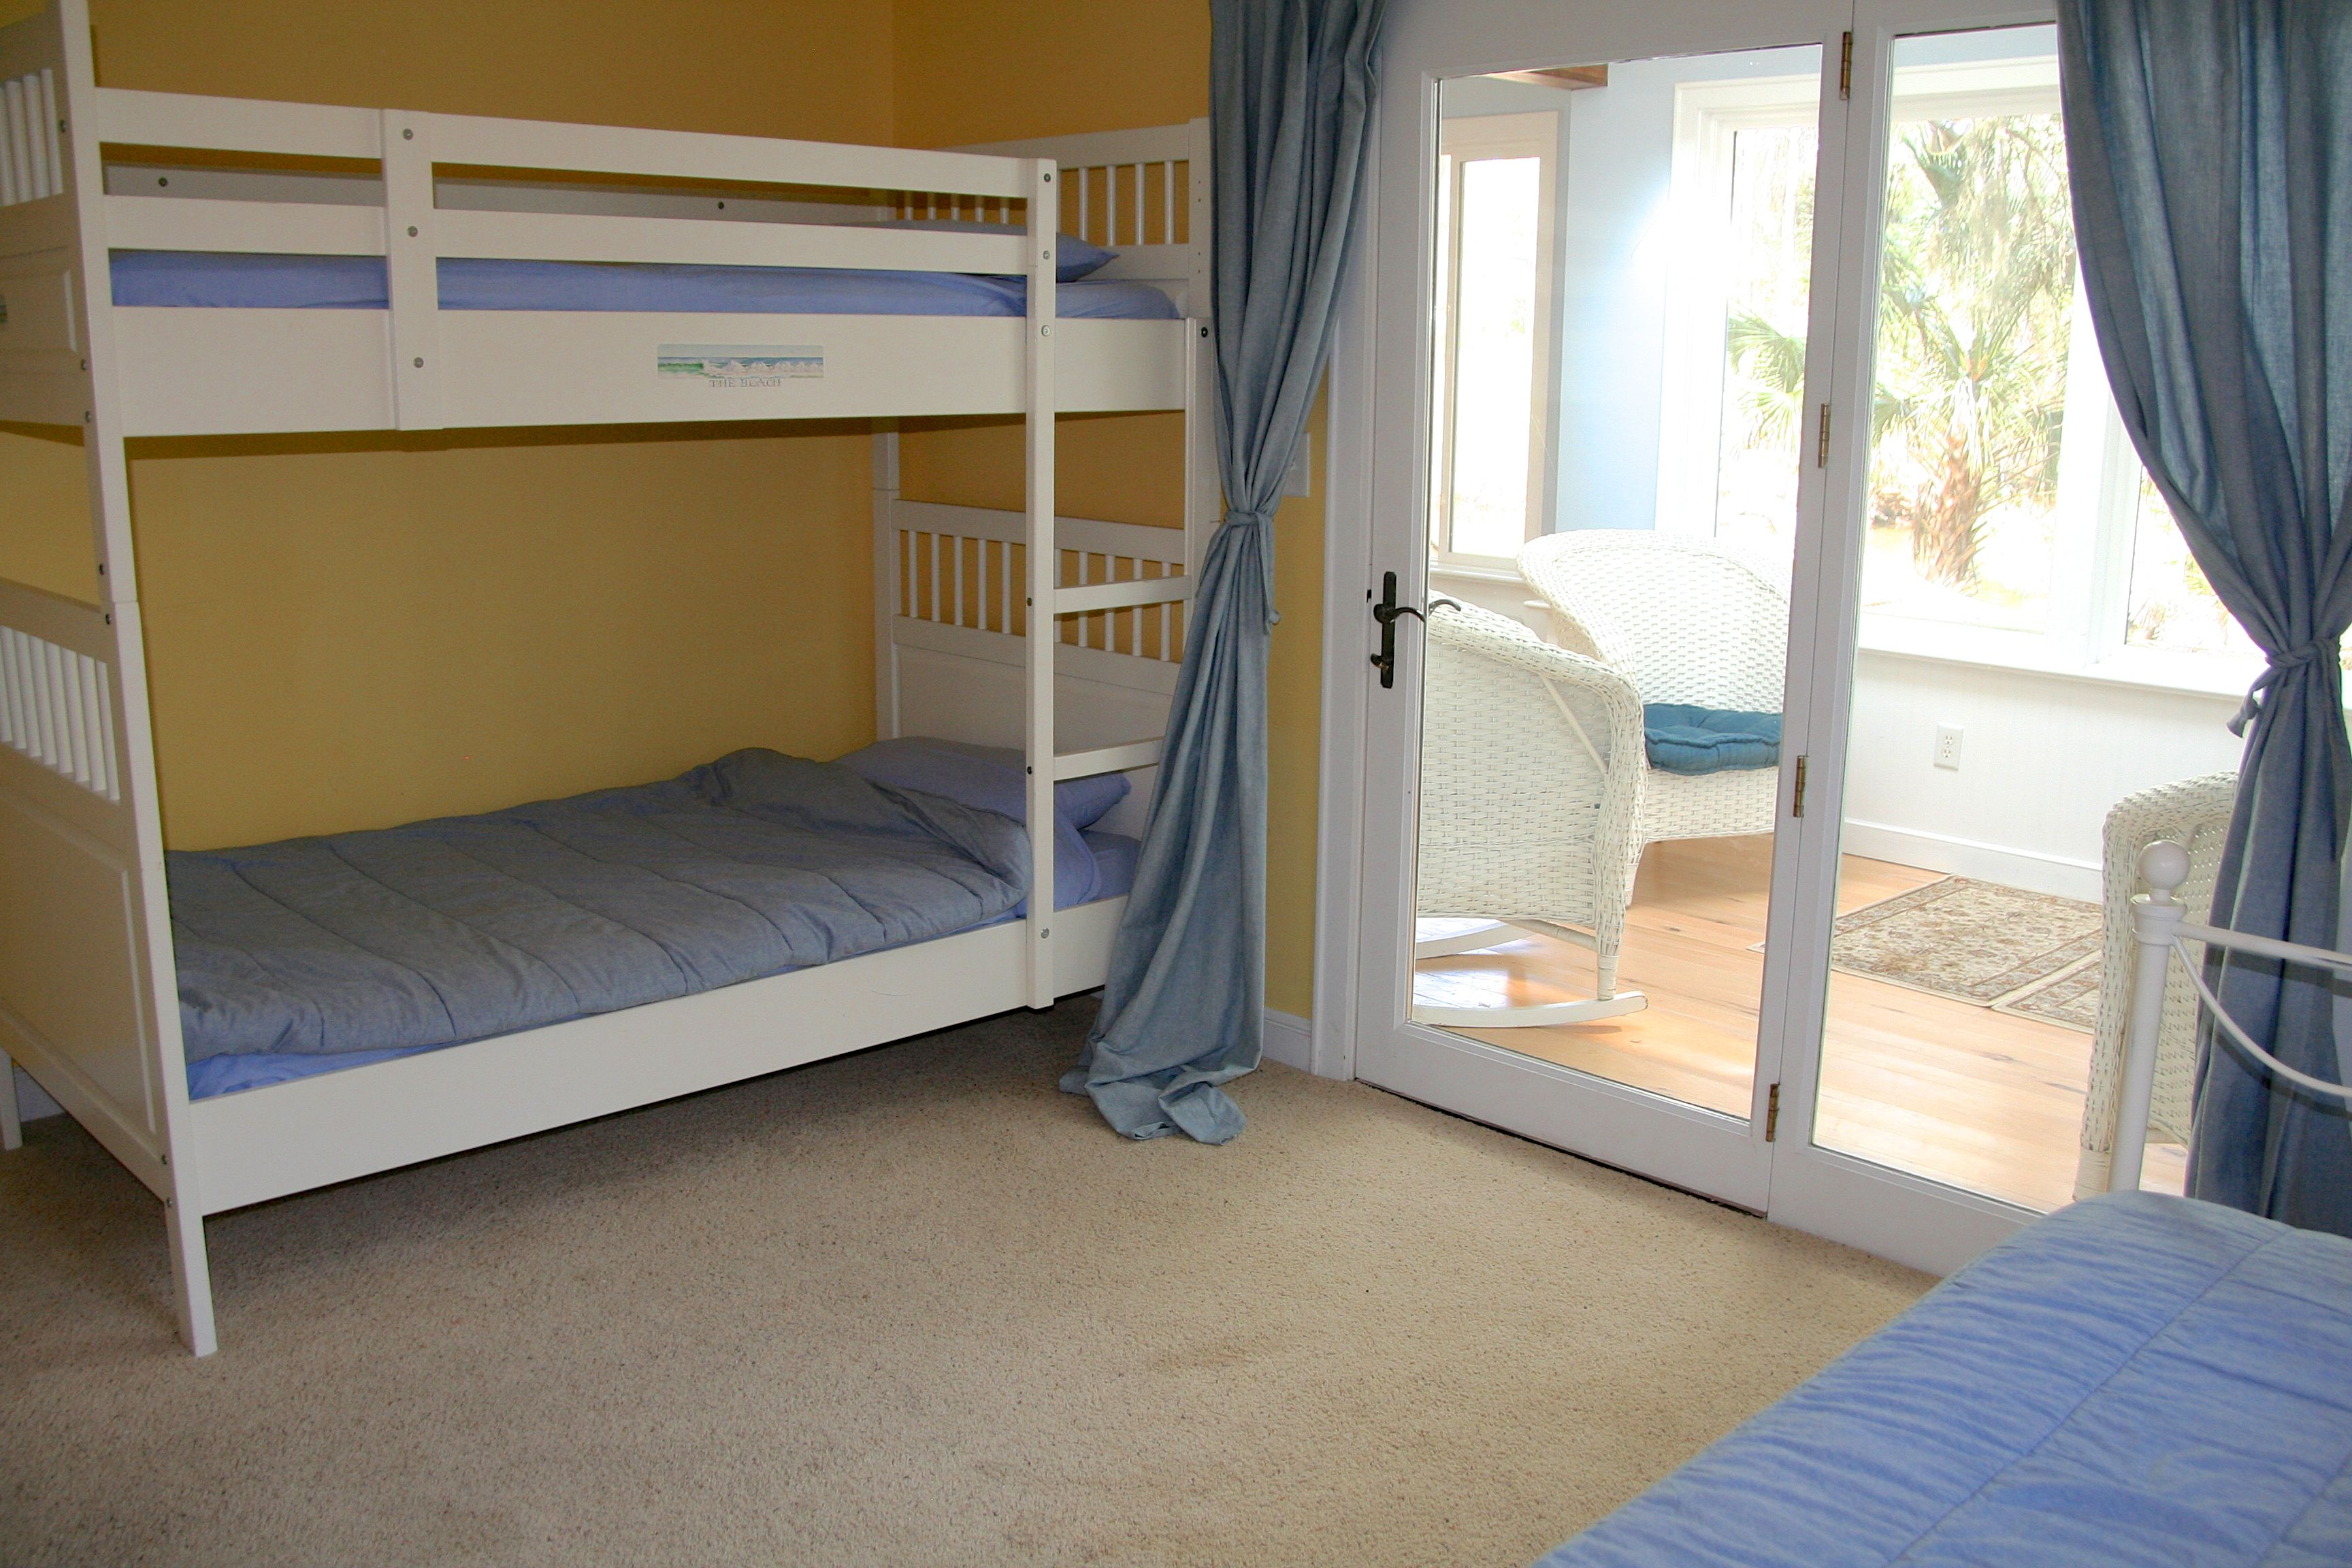 There is also a set of twin bunk beds. This room sleeps 3.